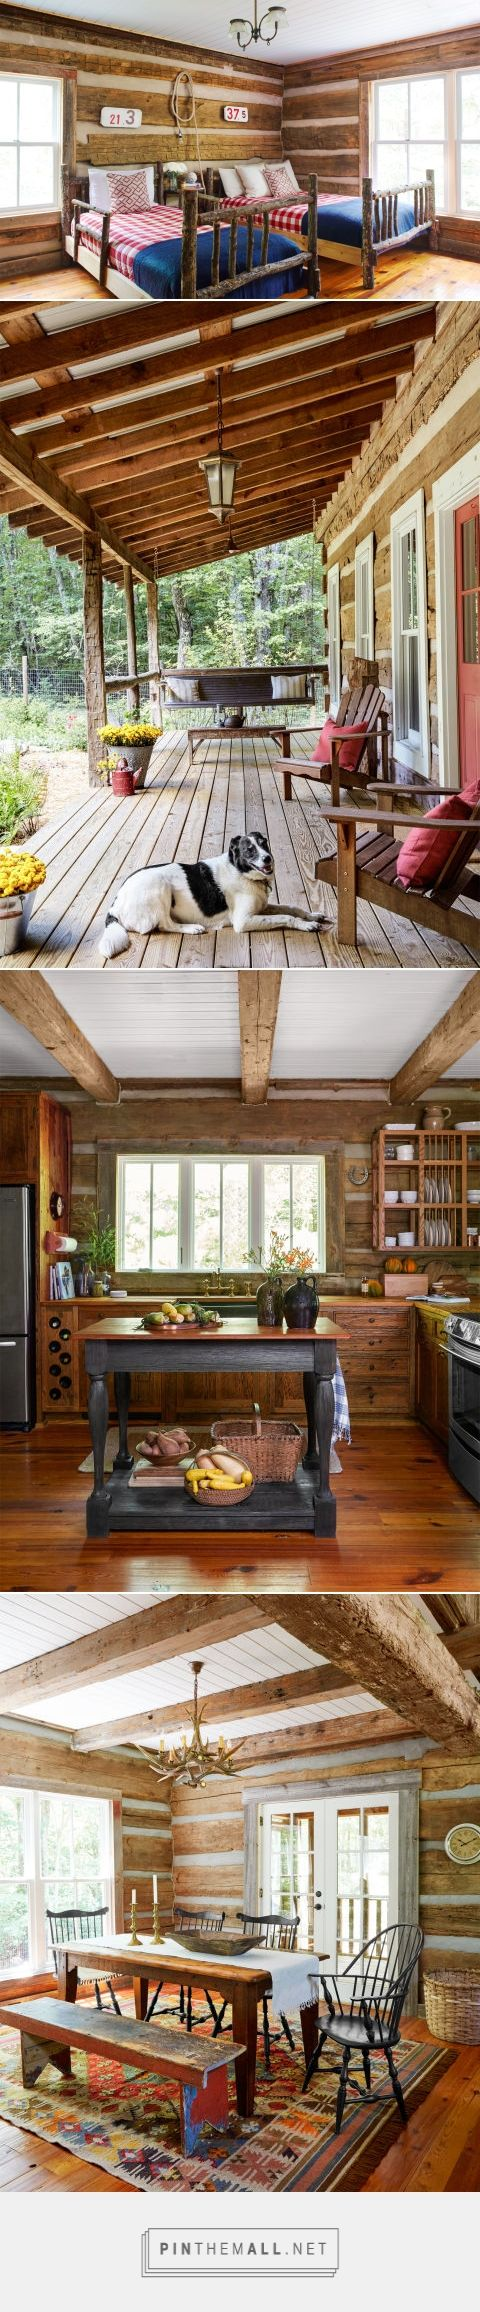 Best 10 Cabin Interior Design Ideas On Pinterest